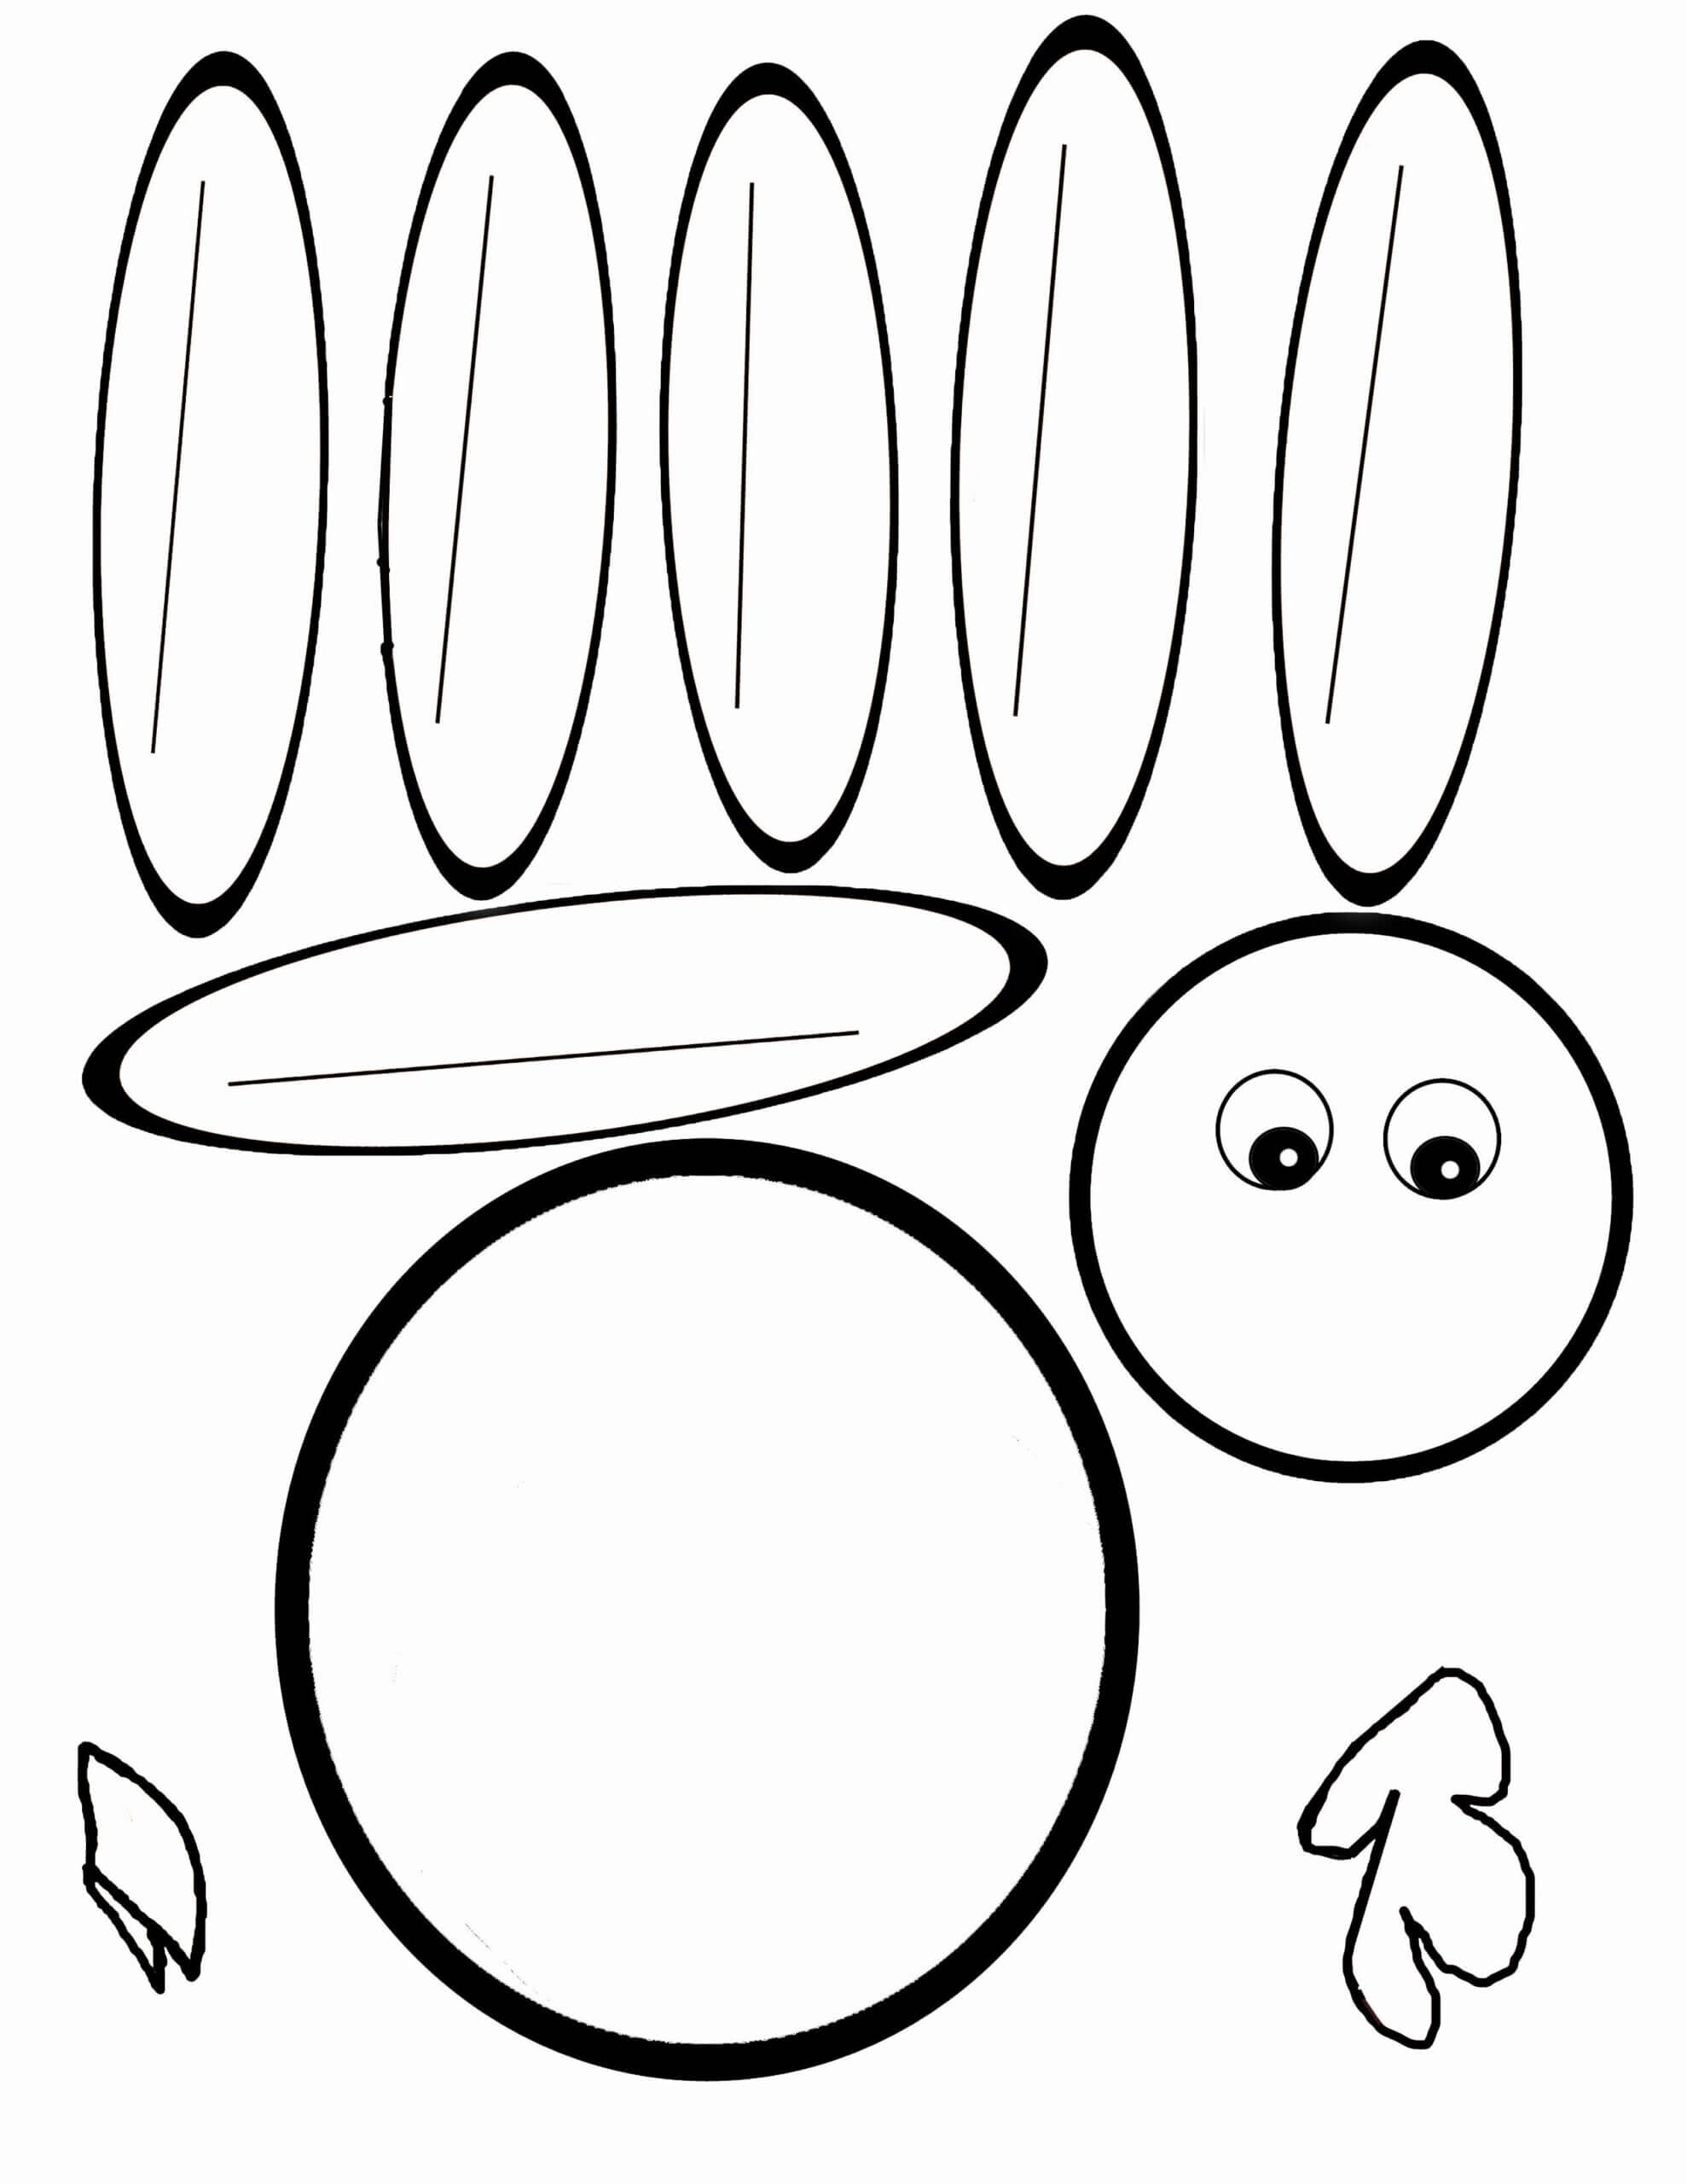 Pin On Pediatric Ot For Blank Turkey Template